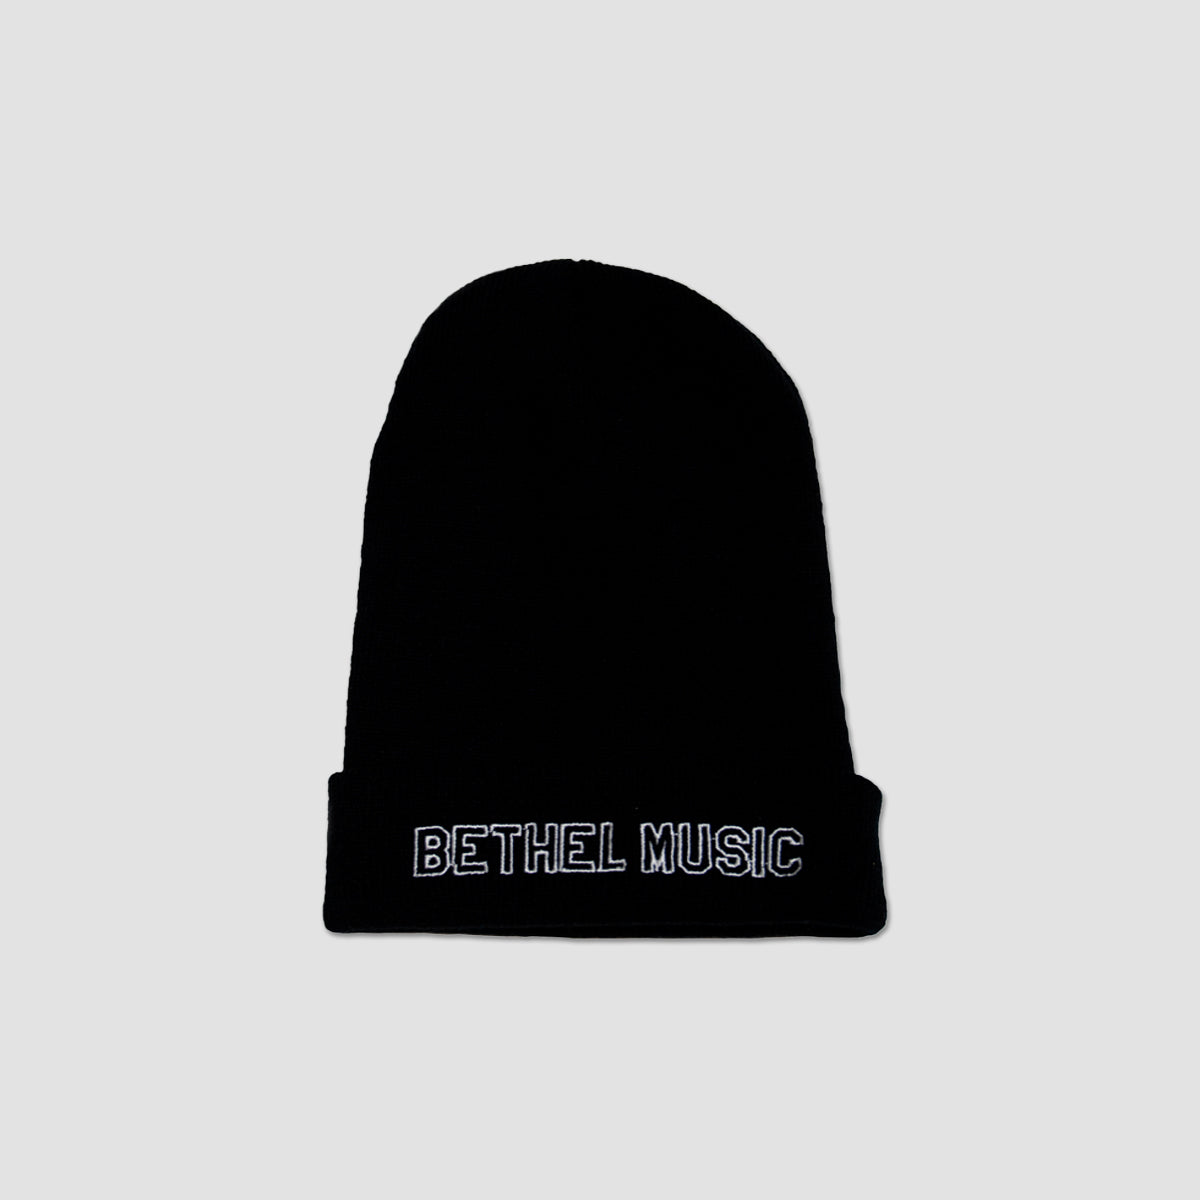 Bethel Music Outline Embroidered Beanie